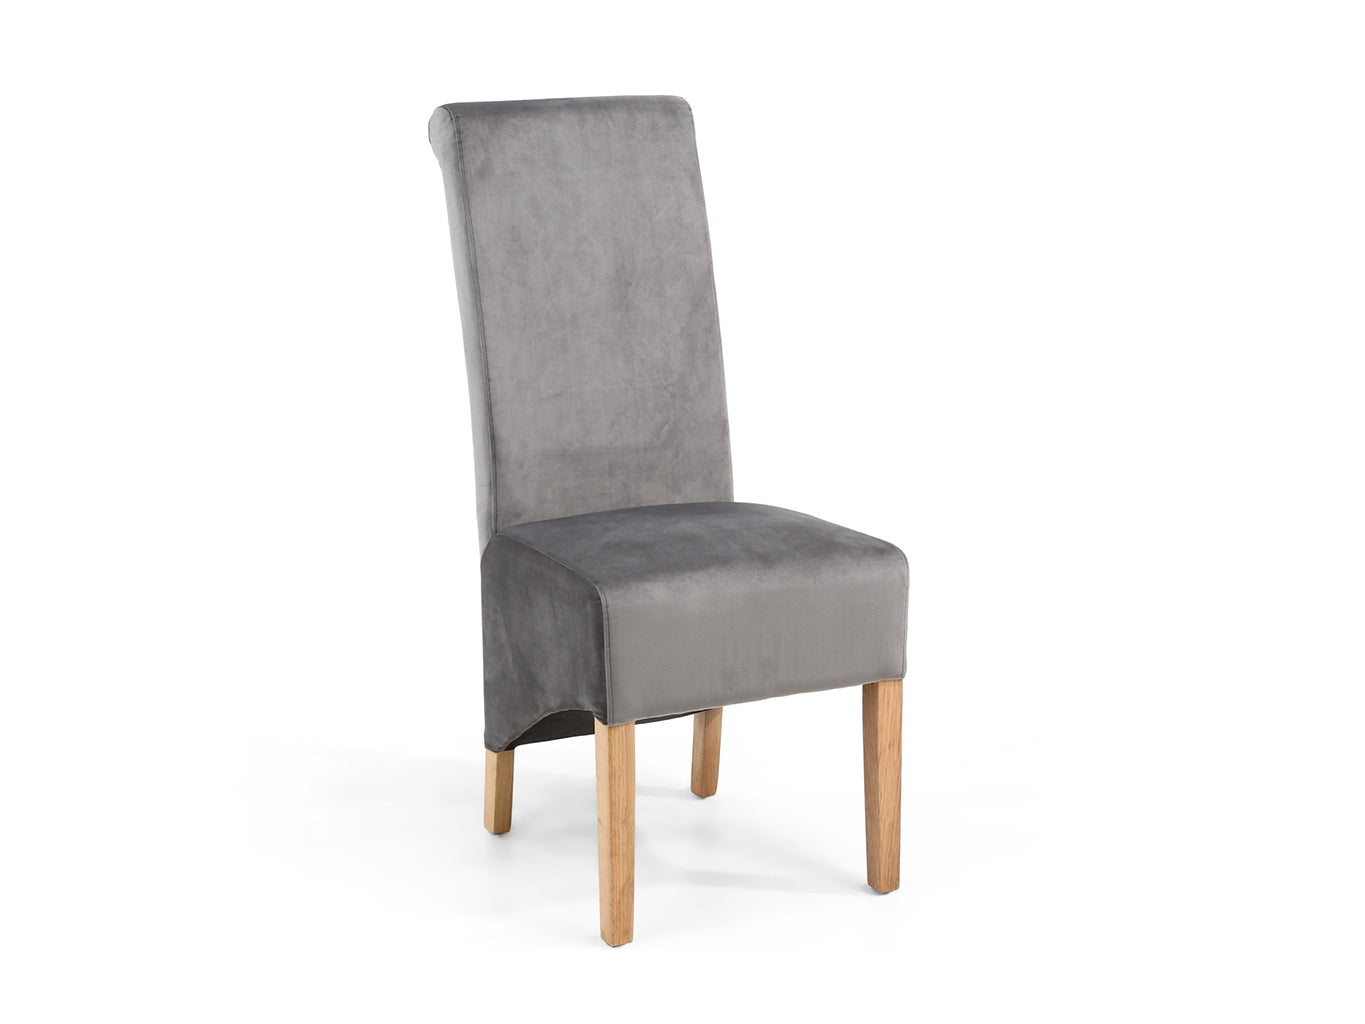 Dining Chair in grey brushed velvet upholstery